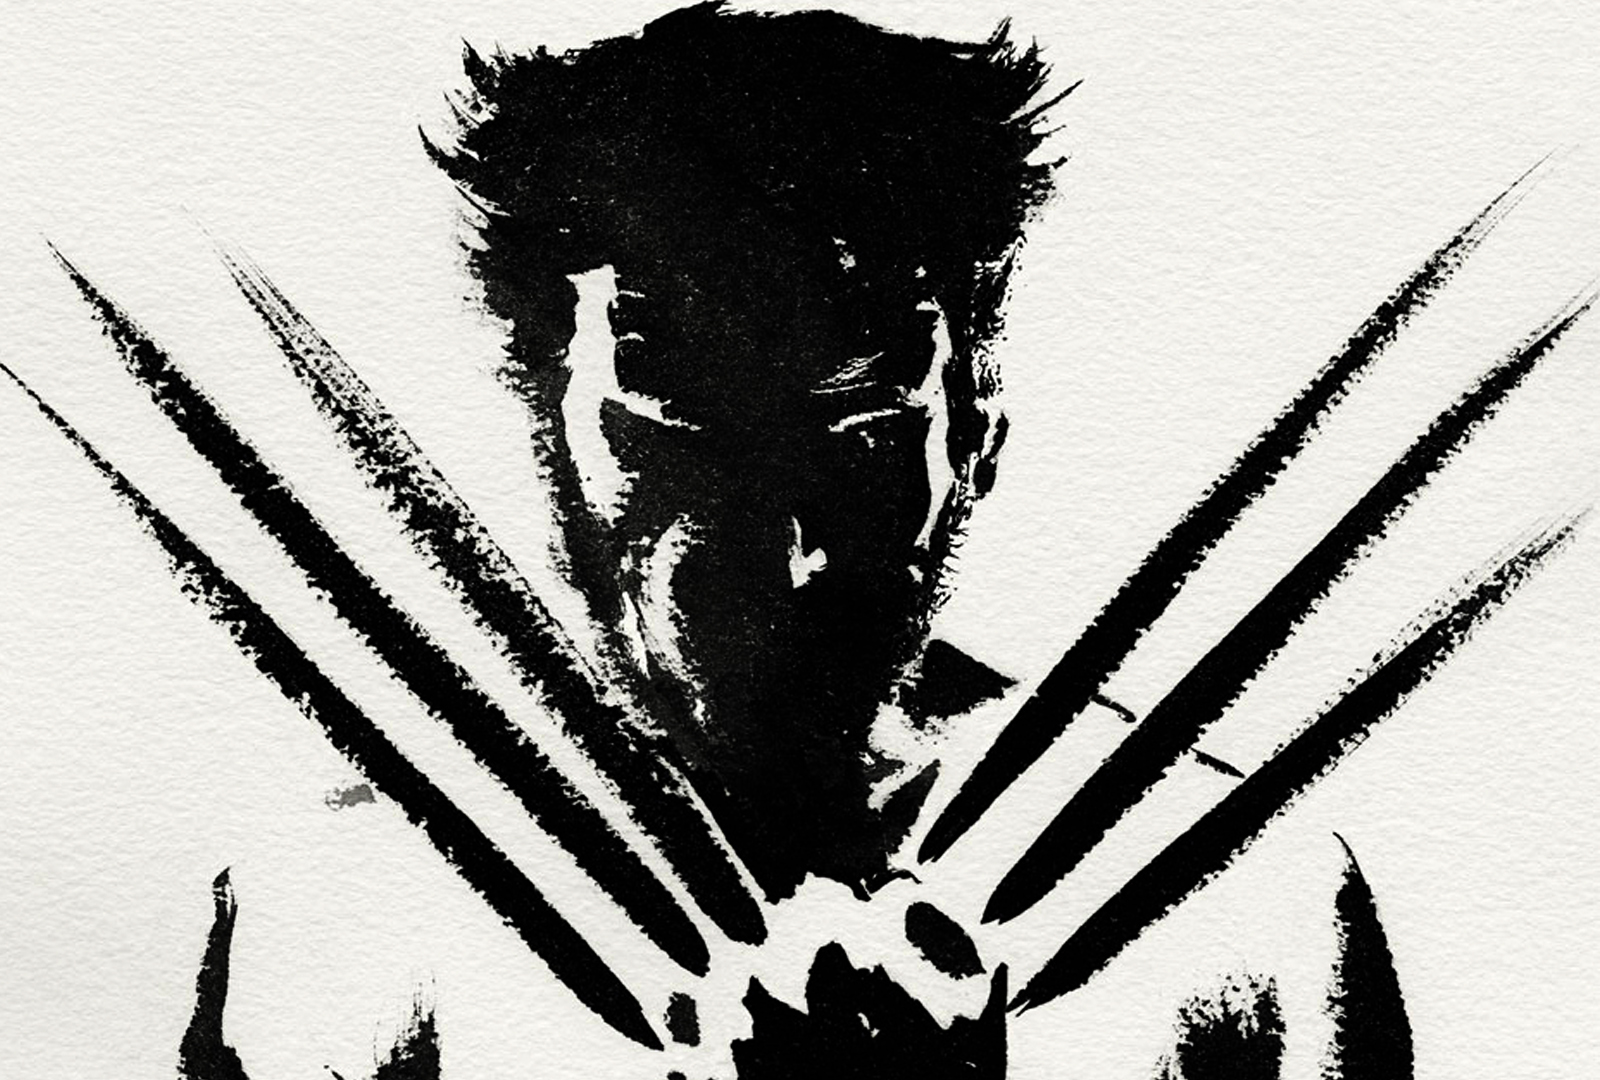 The-Wolverine-Movie-Poster-HD-desktop-High-wallpaper-wpc5809468